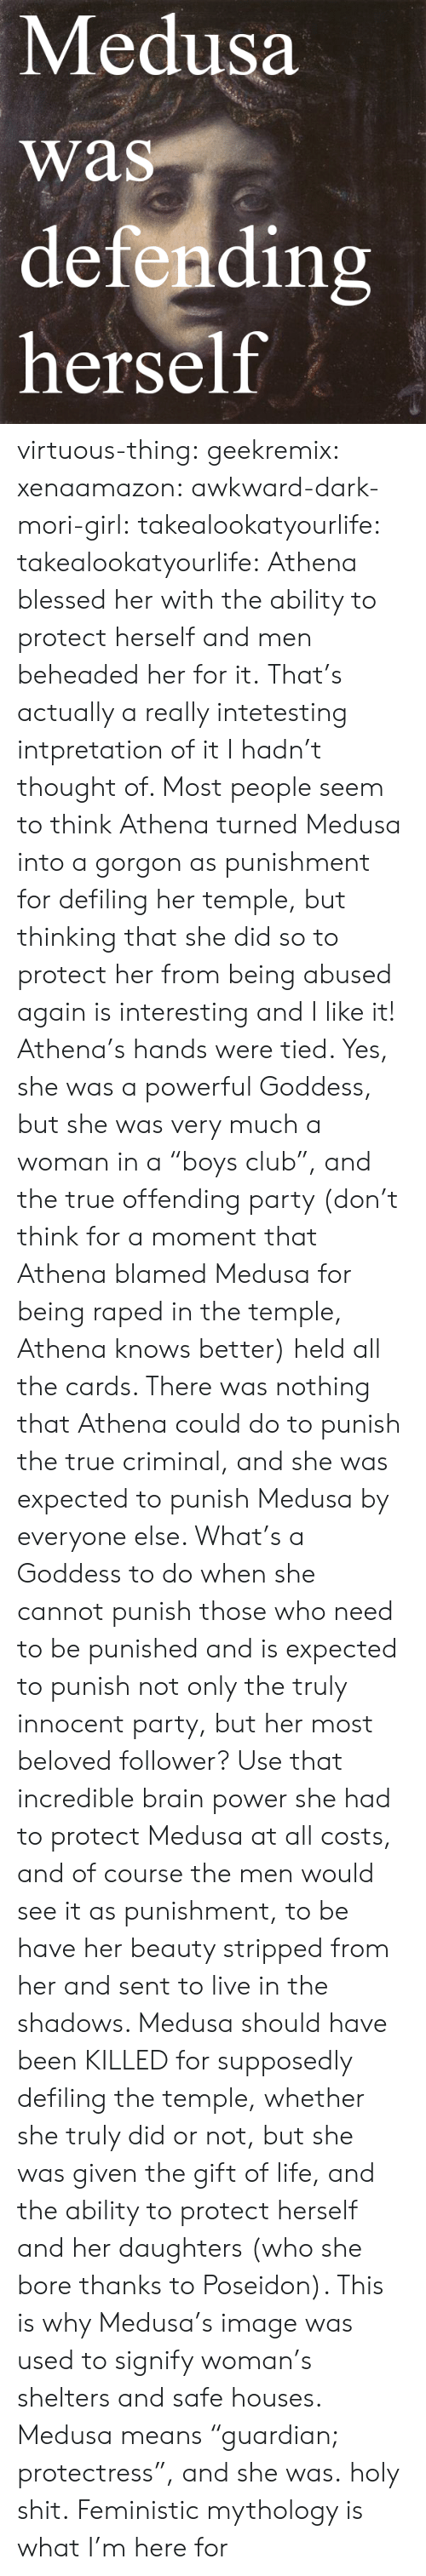 "Blessed, Club, and Life: Medusa  was  defendin  herself  rs virtuous-thing: geekremix:  xenaamazon:  awkward-dark-mori-girl:  takealookatyourlife:  takealookatyourlife: Athena blessed her with the ability to protect herself and men beheaded her for it.  That's actually a really intetesting intpretation of it I hadn't thought of. Most people seem to think Athena turned Medusa into a gorgon as punishment for defiling her temple, but thinking that she did so to protect her from being abused again is interesting and I like it!   Athena's hands were tied. Yes, she was a powerful Goddess, but she was very much a woman in a ""boys club"", and the true offending party (don't think for a moment that Athena blamed Medusa for being raped in the temple, Athena knows better) held all the cards. There was nothing that Athena could do to punish the true criminal, and she was expected to punish Medusa by everyone else. What's a Goddess to do when she cannot punish those who need to be punished and is expected to punish not only the truly innocent party, but her most beloved follower? Use that incredible brain power she had to protect Medusa at all costs, and of course the men would see it as punishment, to be have her beauty stripped from her and sent to live in the shadows. Medusa should have been KILLED for supposedly defiling the temple, whether she truly did or not, but she was given the gift of life, and the ability to protect herself and her daughters (who she bore thanks to Poseidon). This is why Medusa's image was used to signify woman's shelters and safe houses. Medusa means ""guardian; protectress"", and she was.  holy shit.   Feministic mythology is what I'm here for"